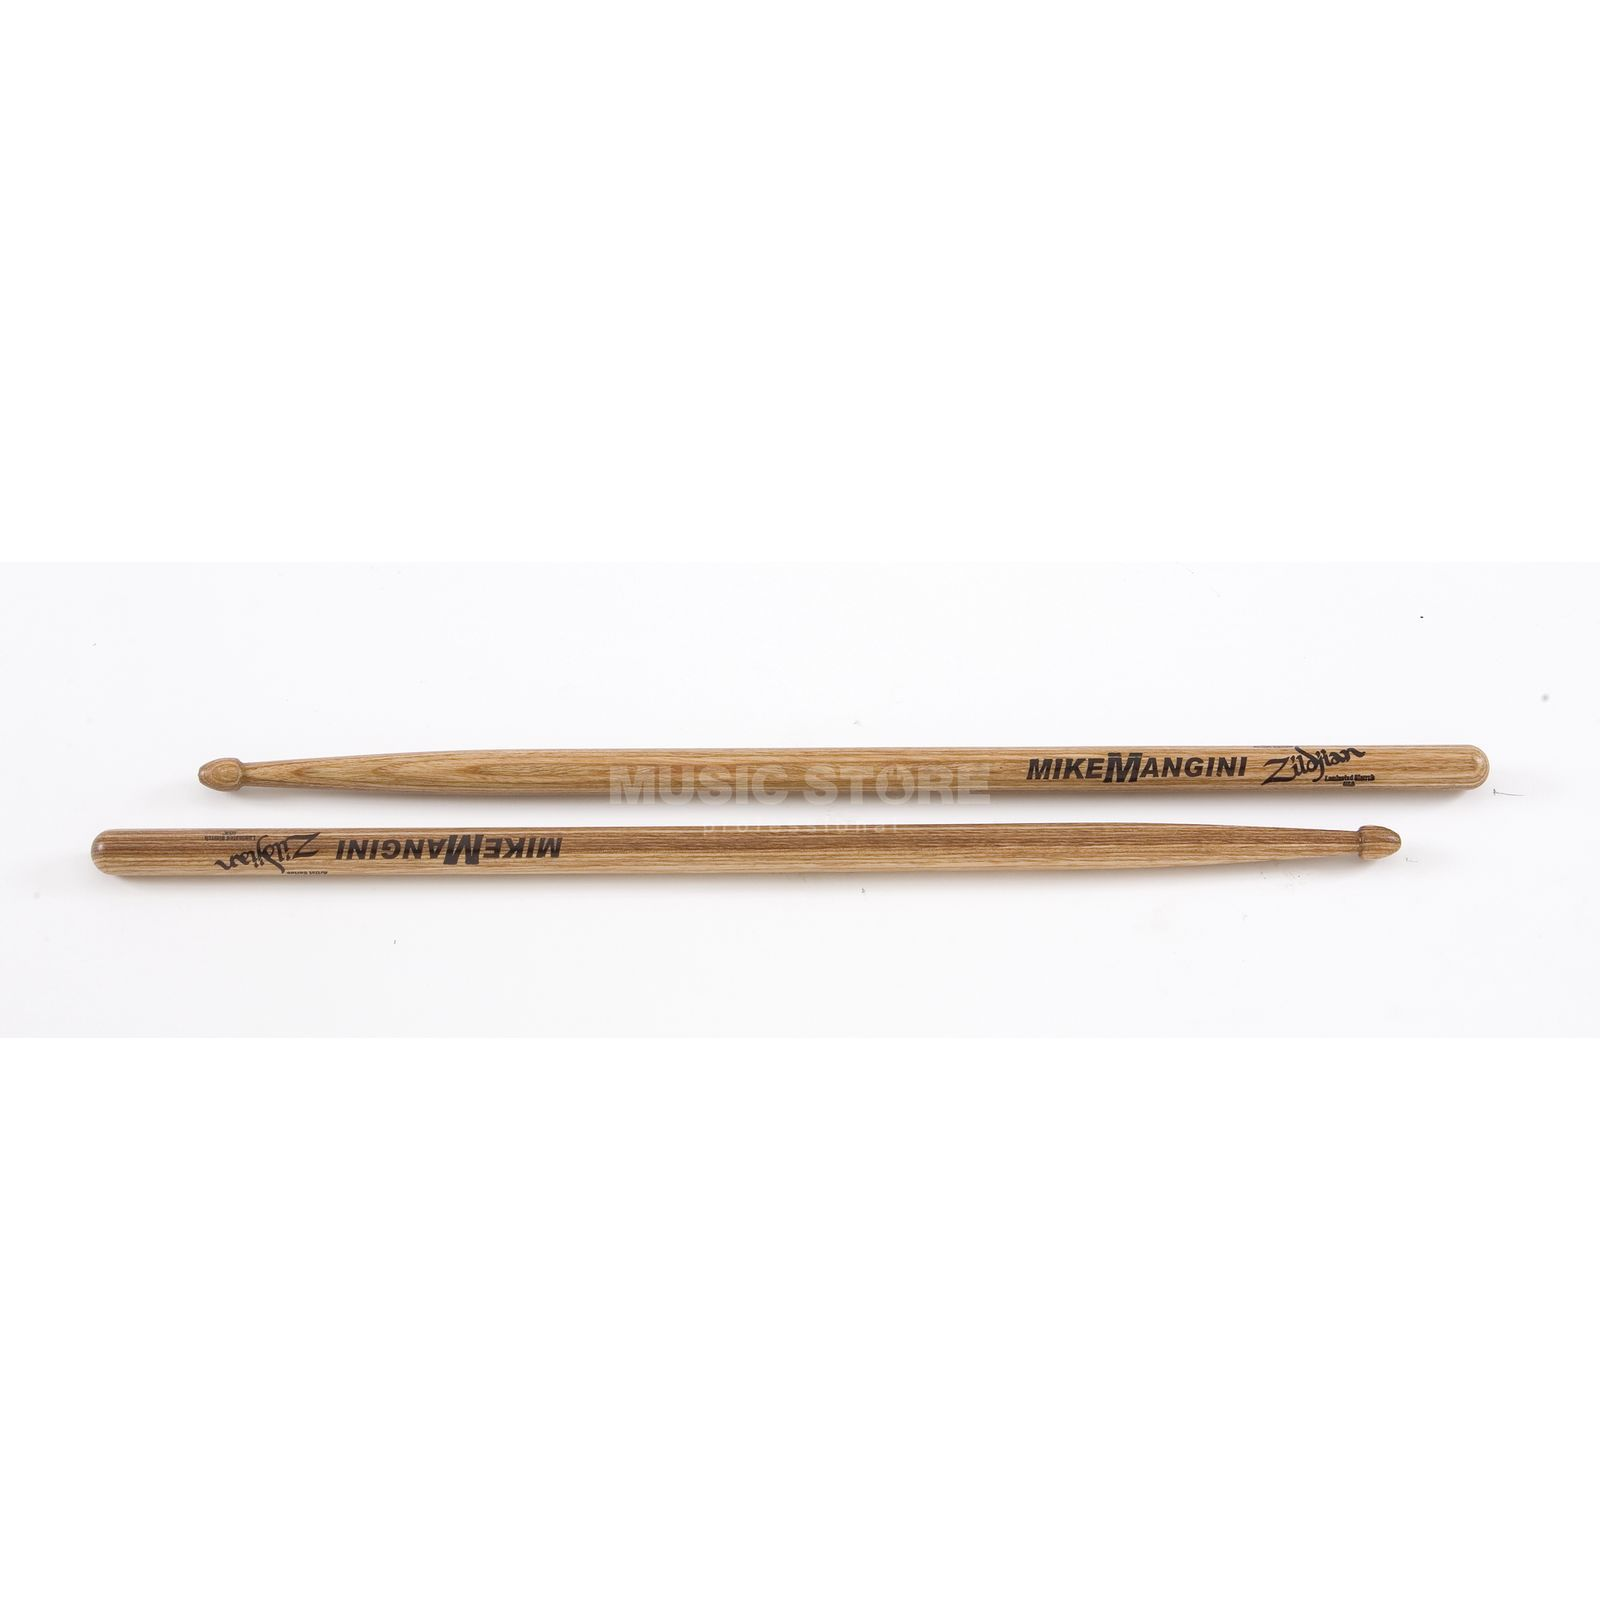 Zildjian Mike Mangini Sticks, Laminated Birch Produktbillede